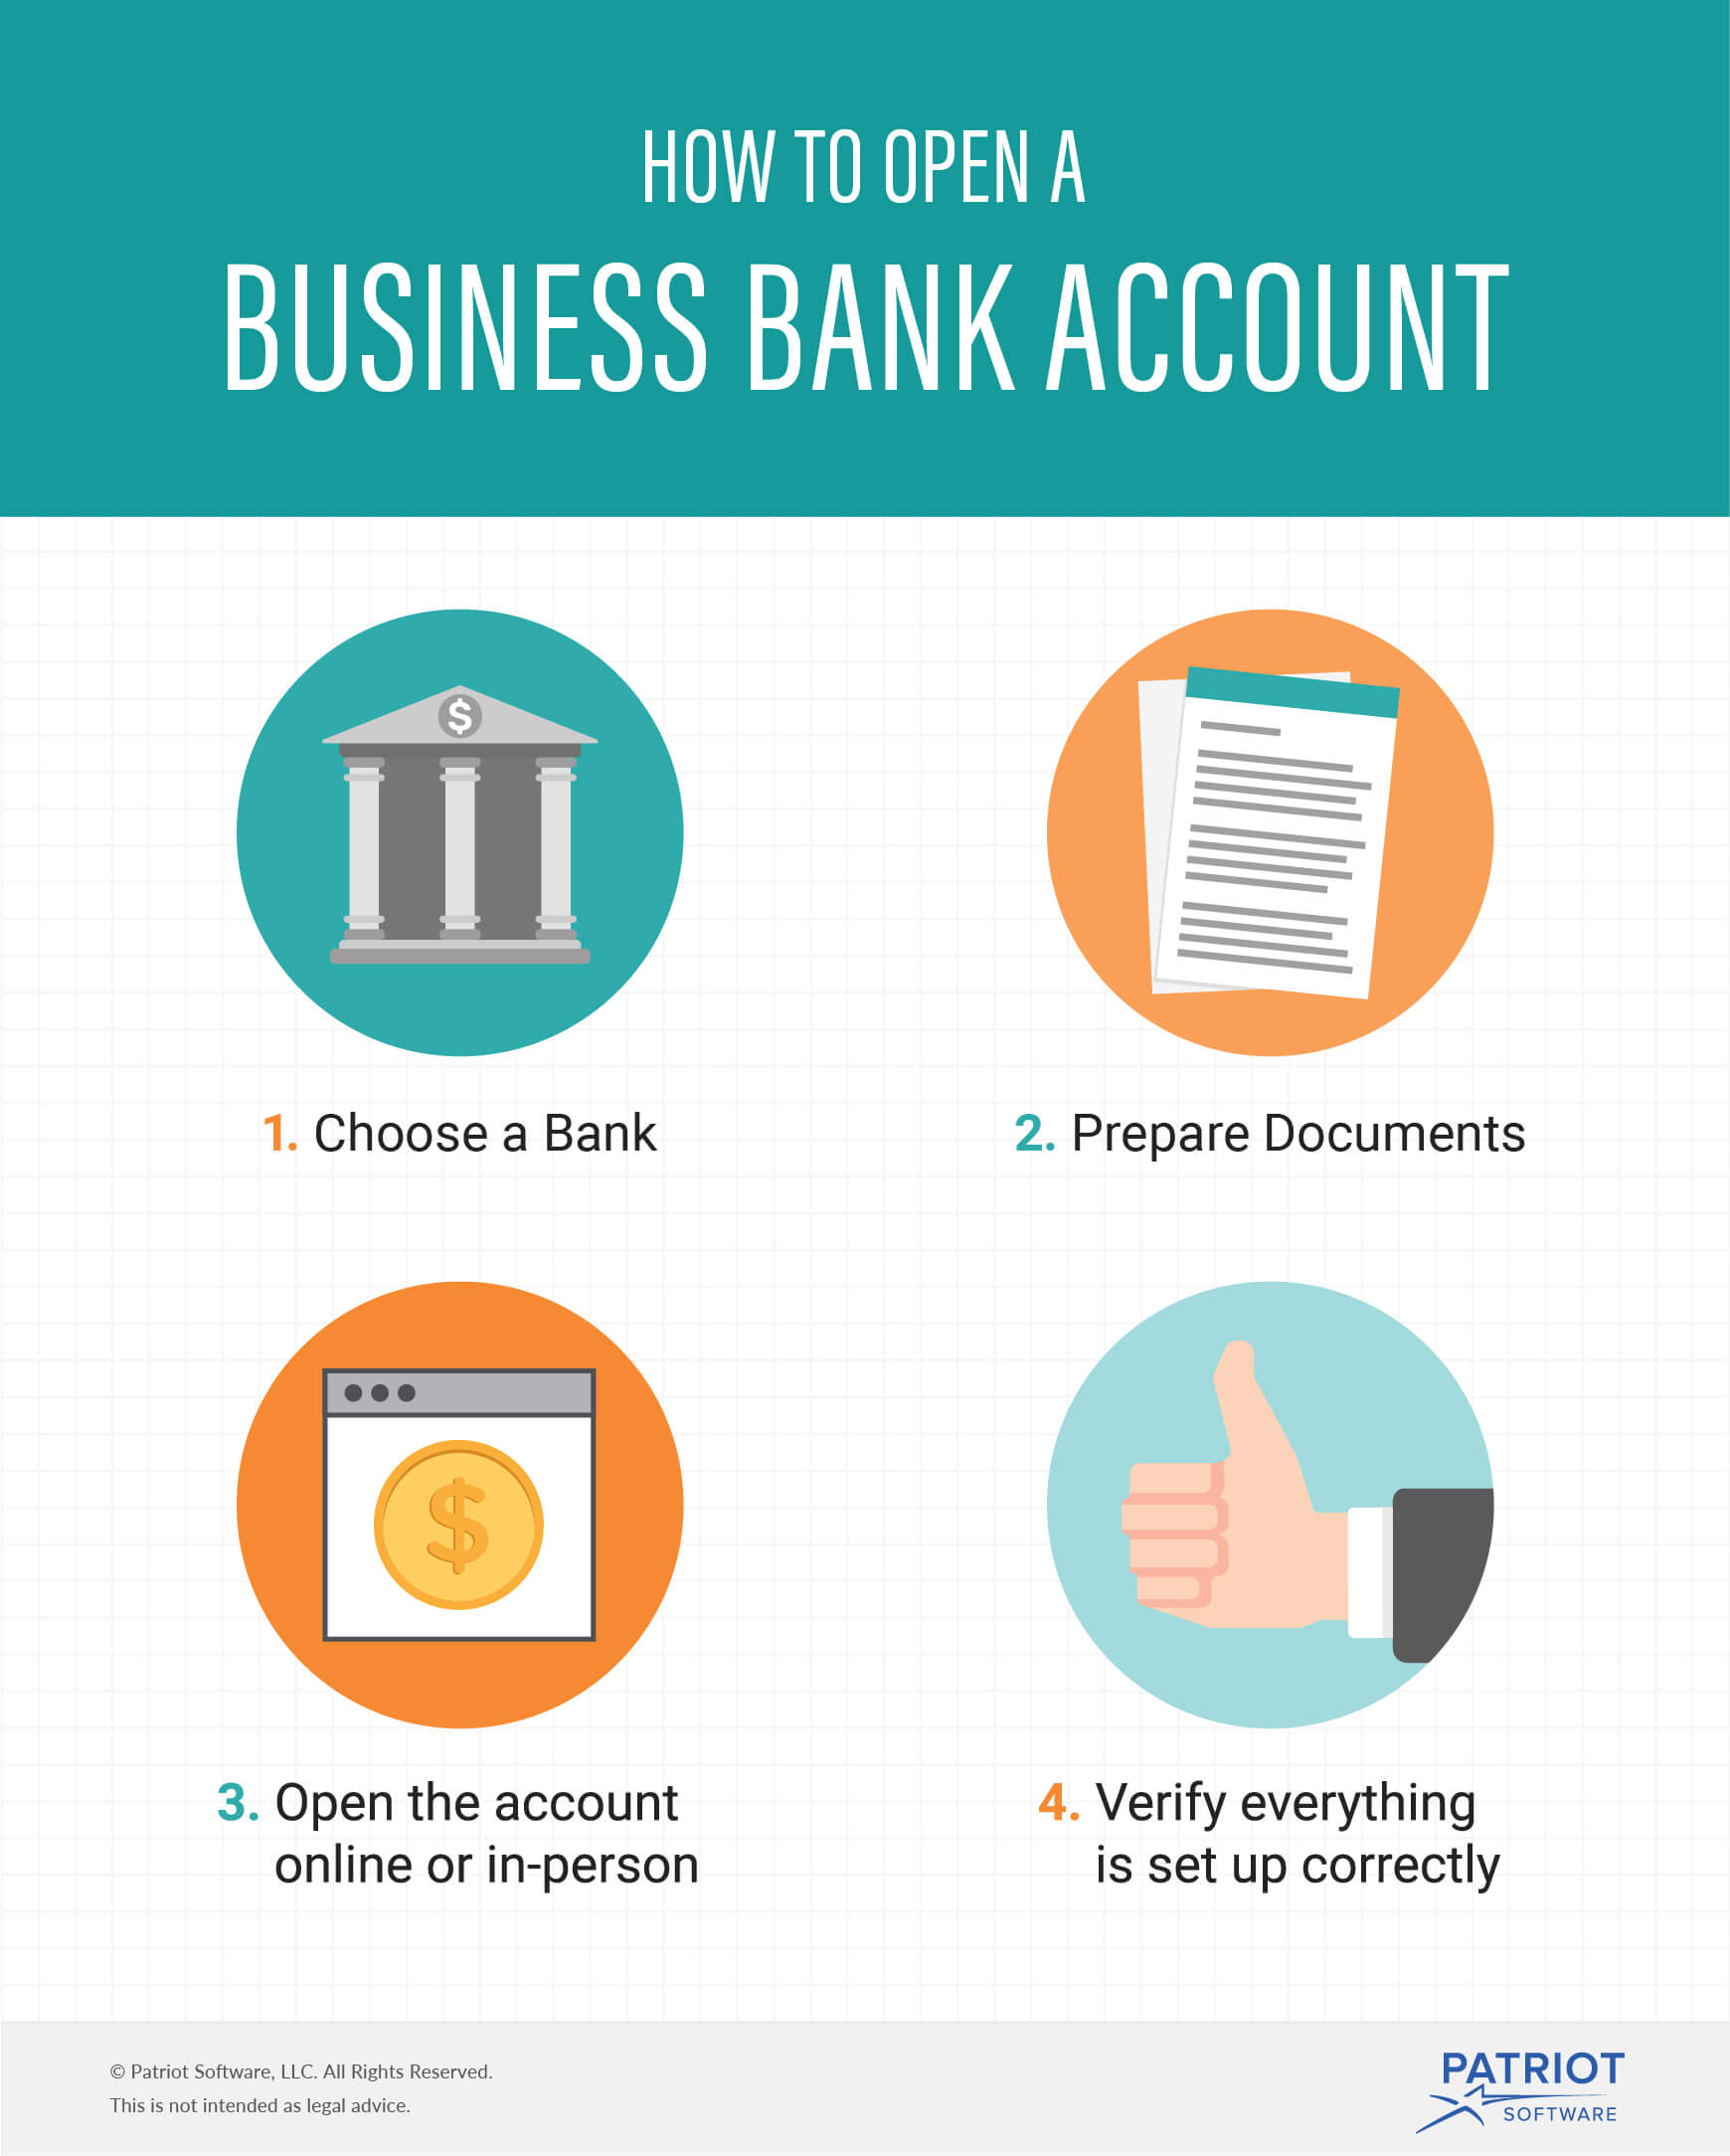 How To Open A Business Bank Account 4 Steps To Get Started